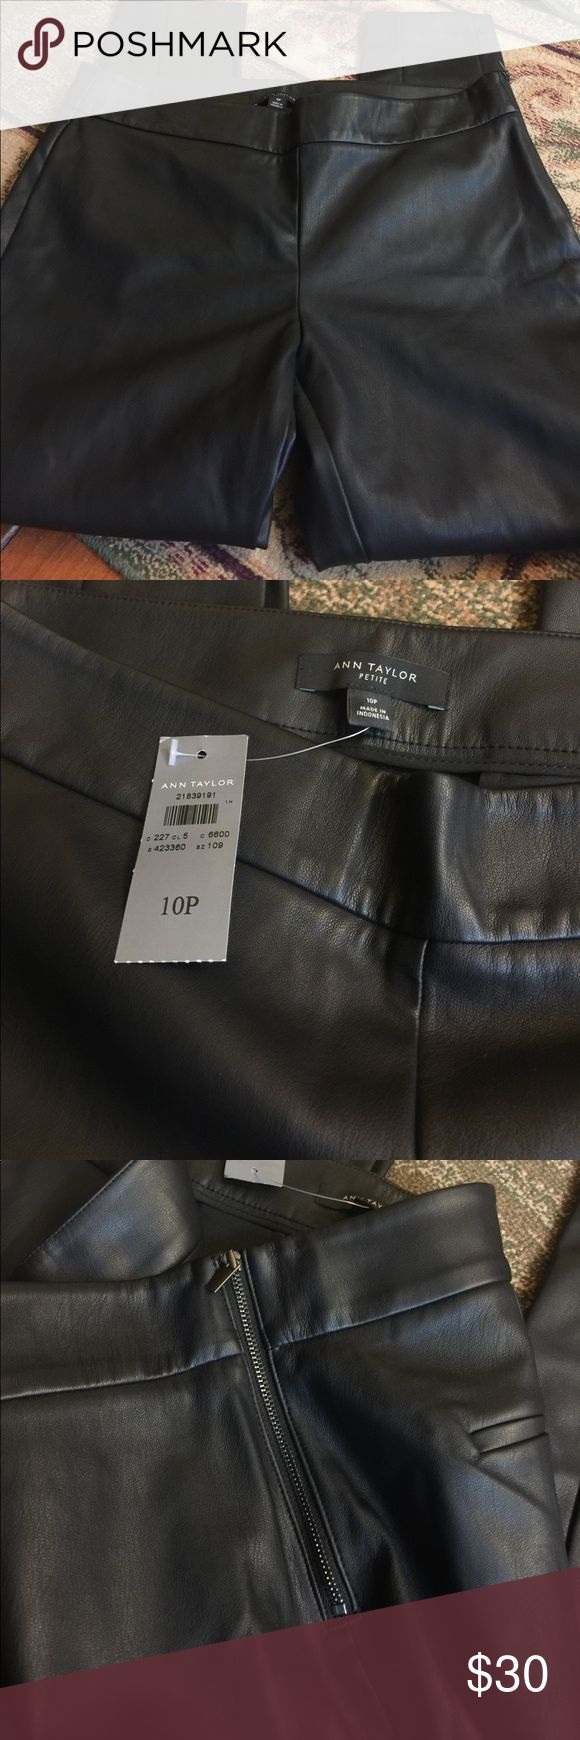 NWT 10 petite Ann Taylor leather-like pants No flaws, very cute pants. The pants are black and zip up the side. Pants are skinny fit. Comes from a smoke free home. Ann Taylor Pants Skinny